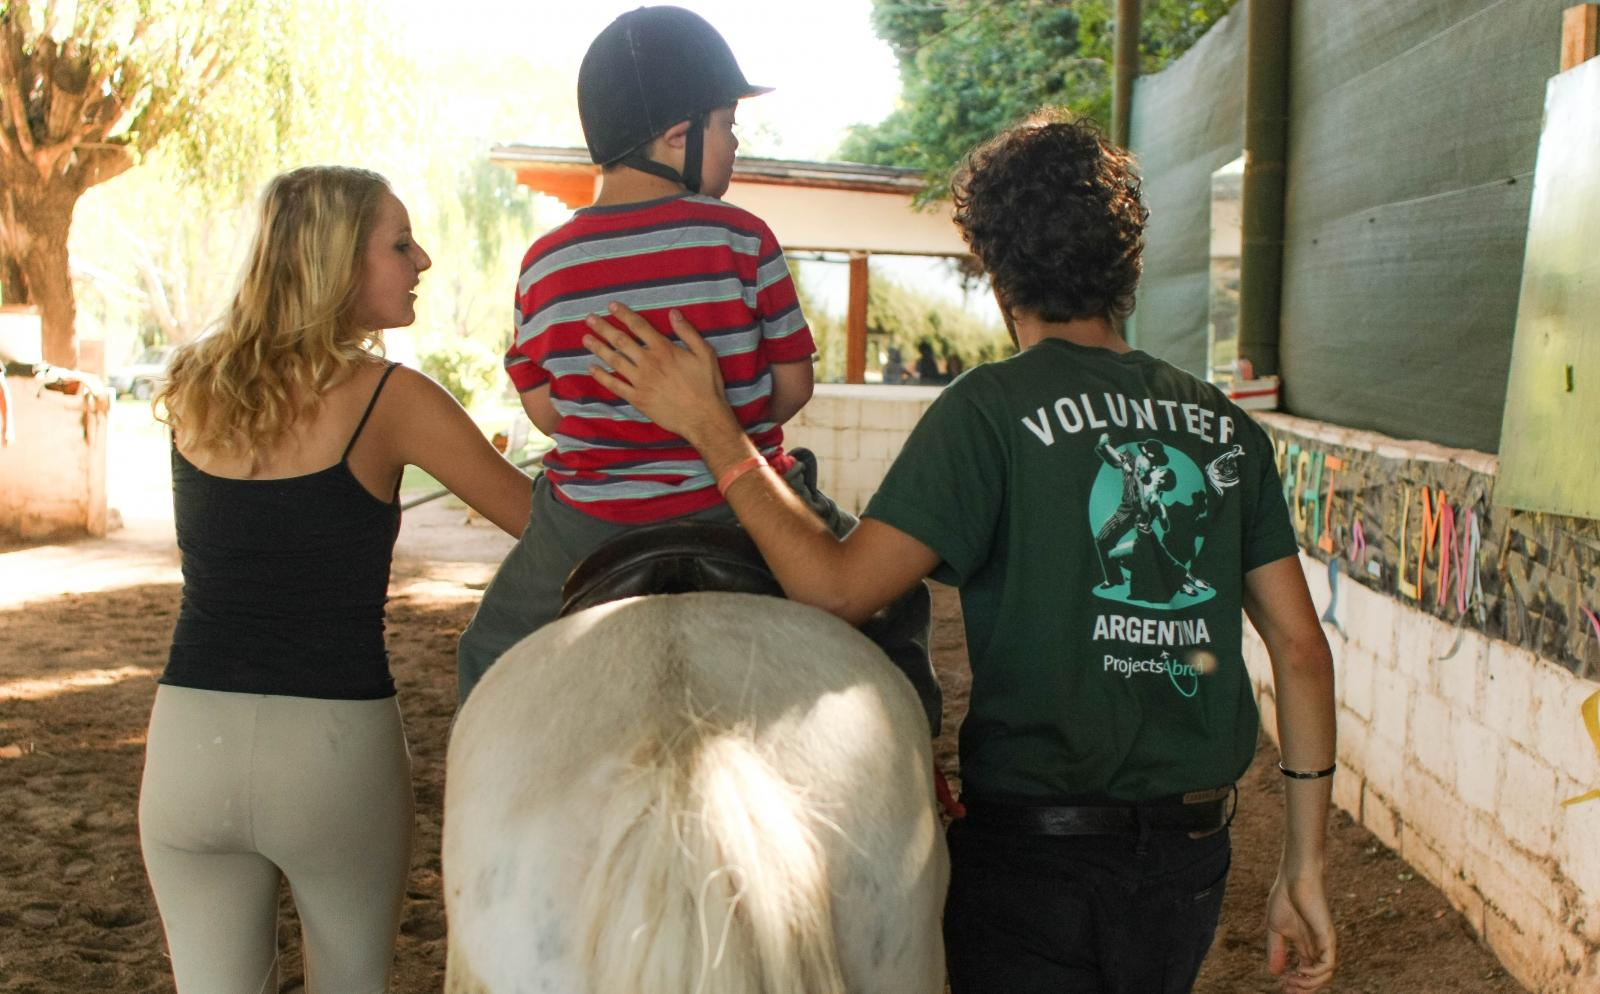 A volunteer in South America assists a young child on a horse as part of his Equine Therapy project